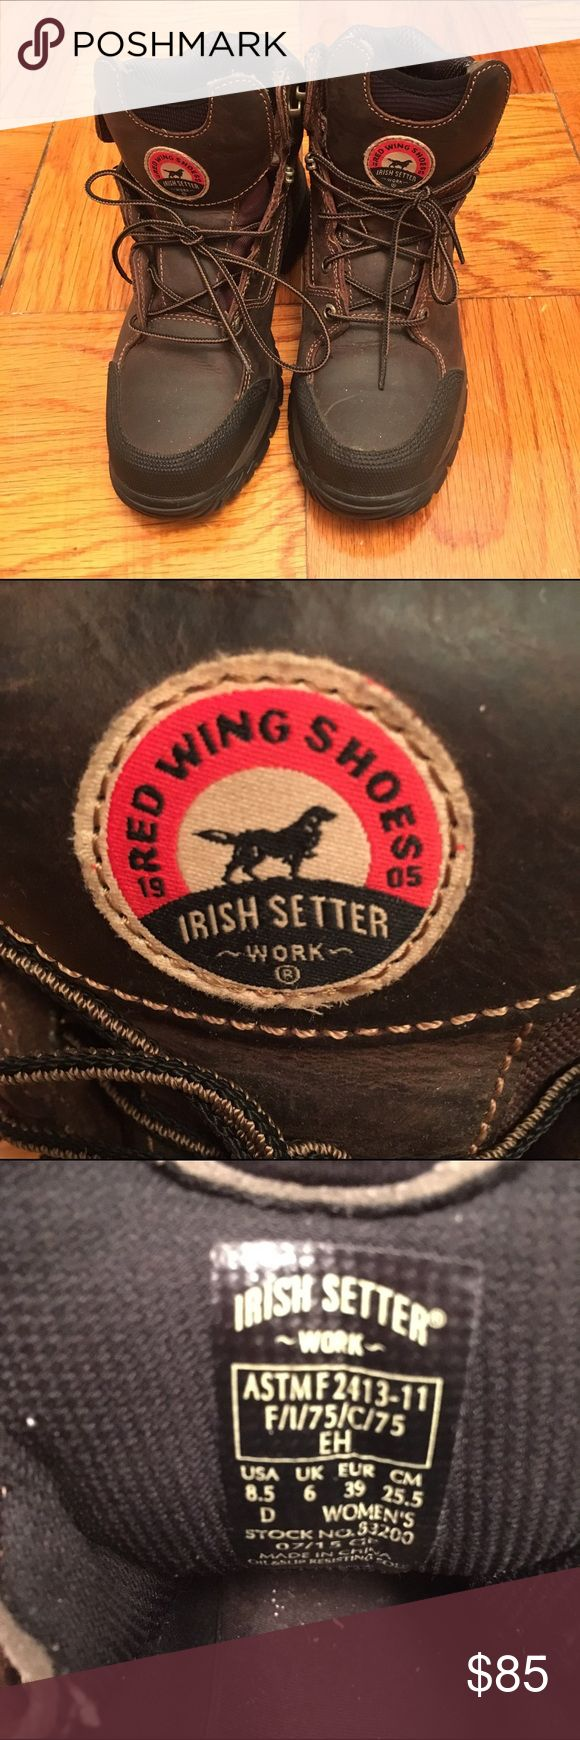 🌟TODAYSALE🌟Red wing irish setter work Authentic. Never been used. No box. Selling for a friend so price firm. Red Wing Shoes Shoes Lace Up Boots